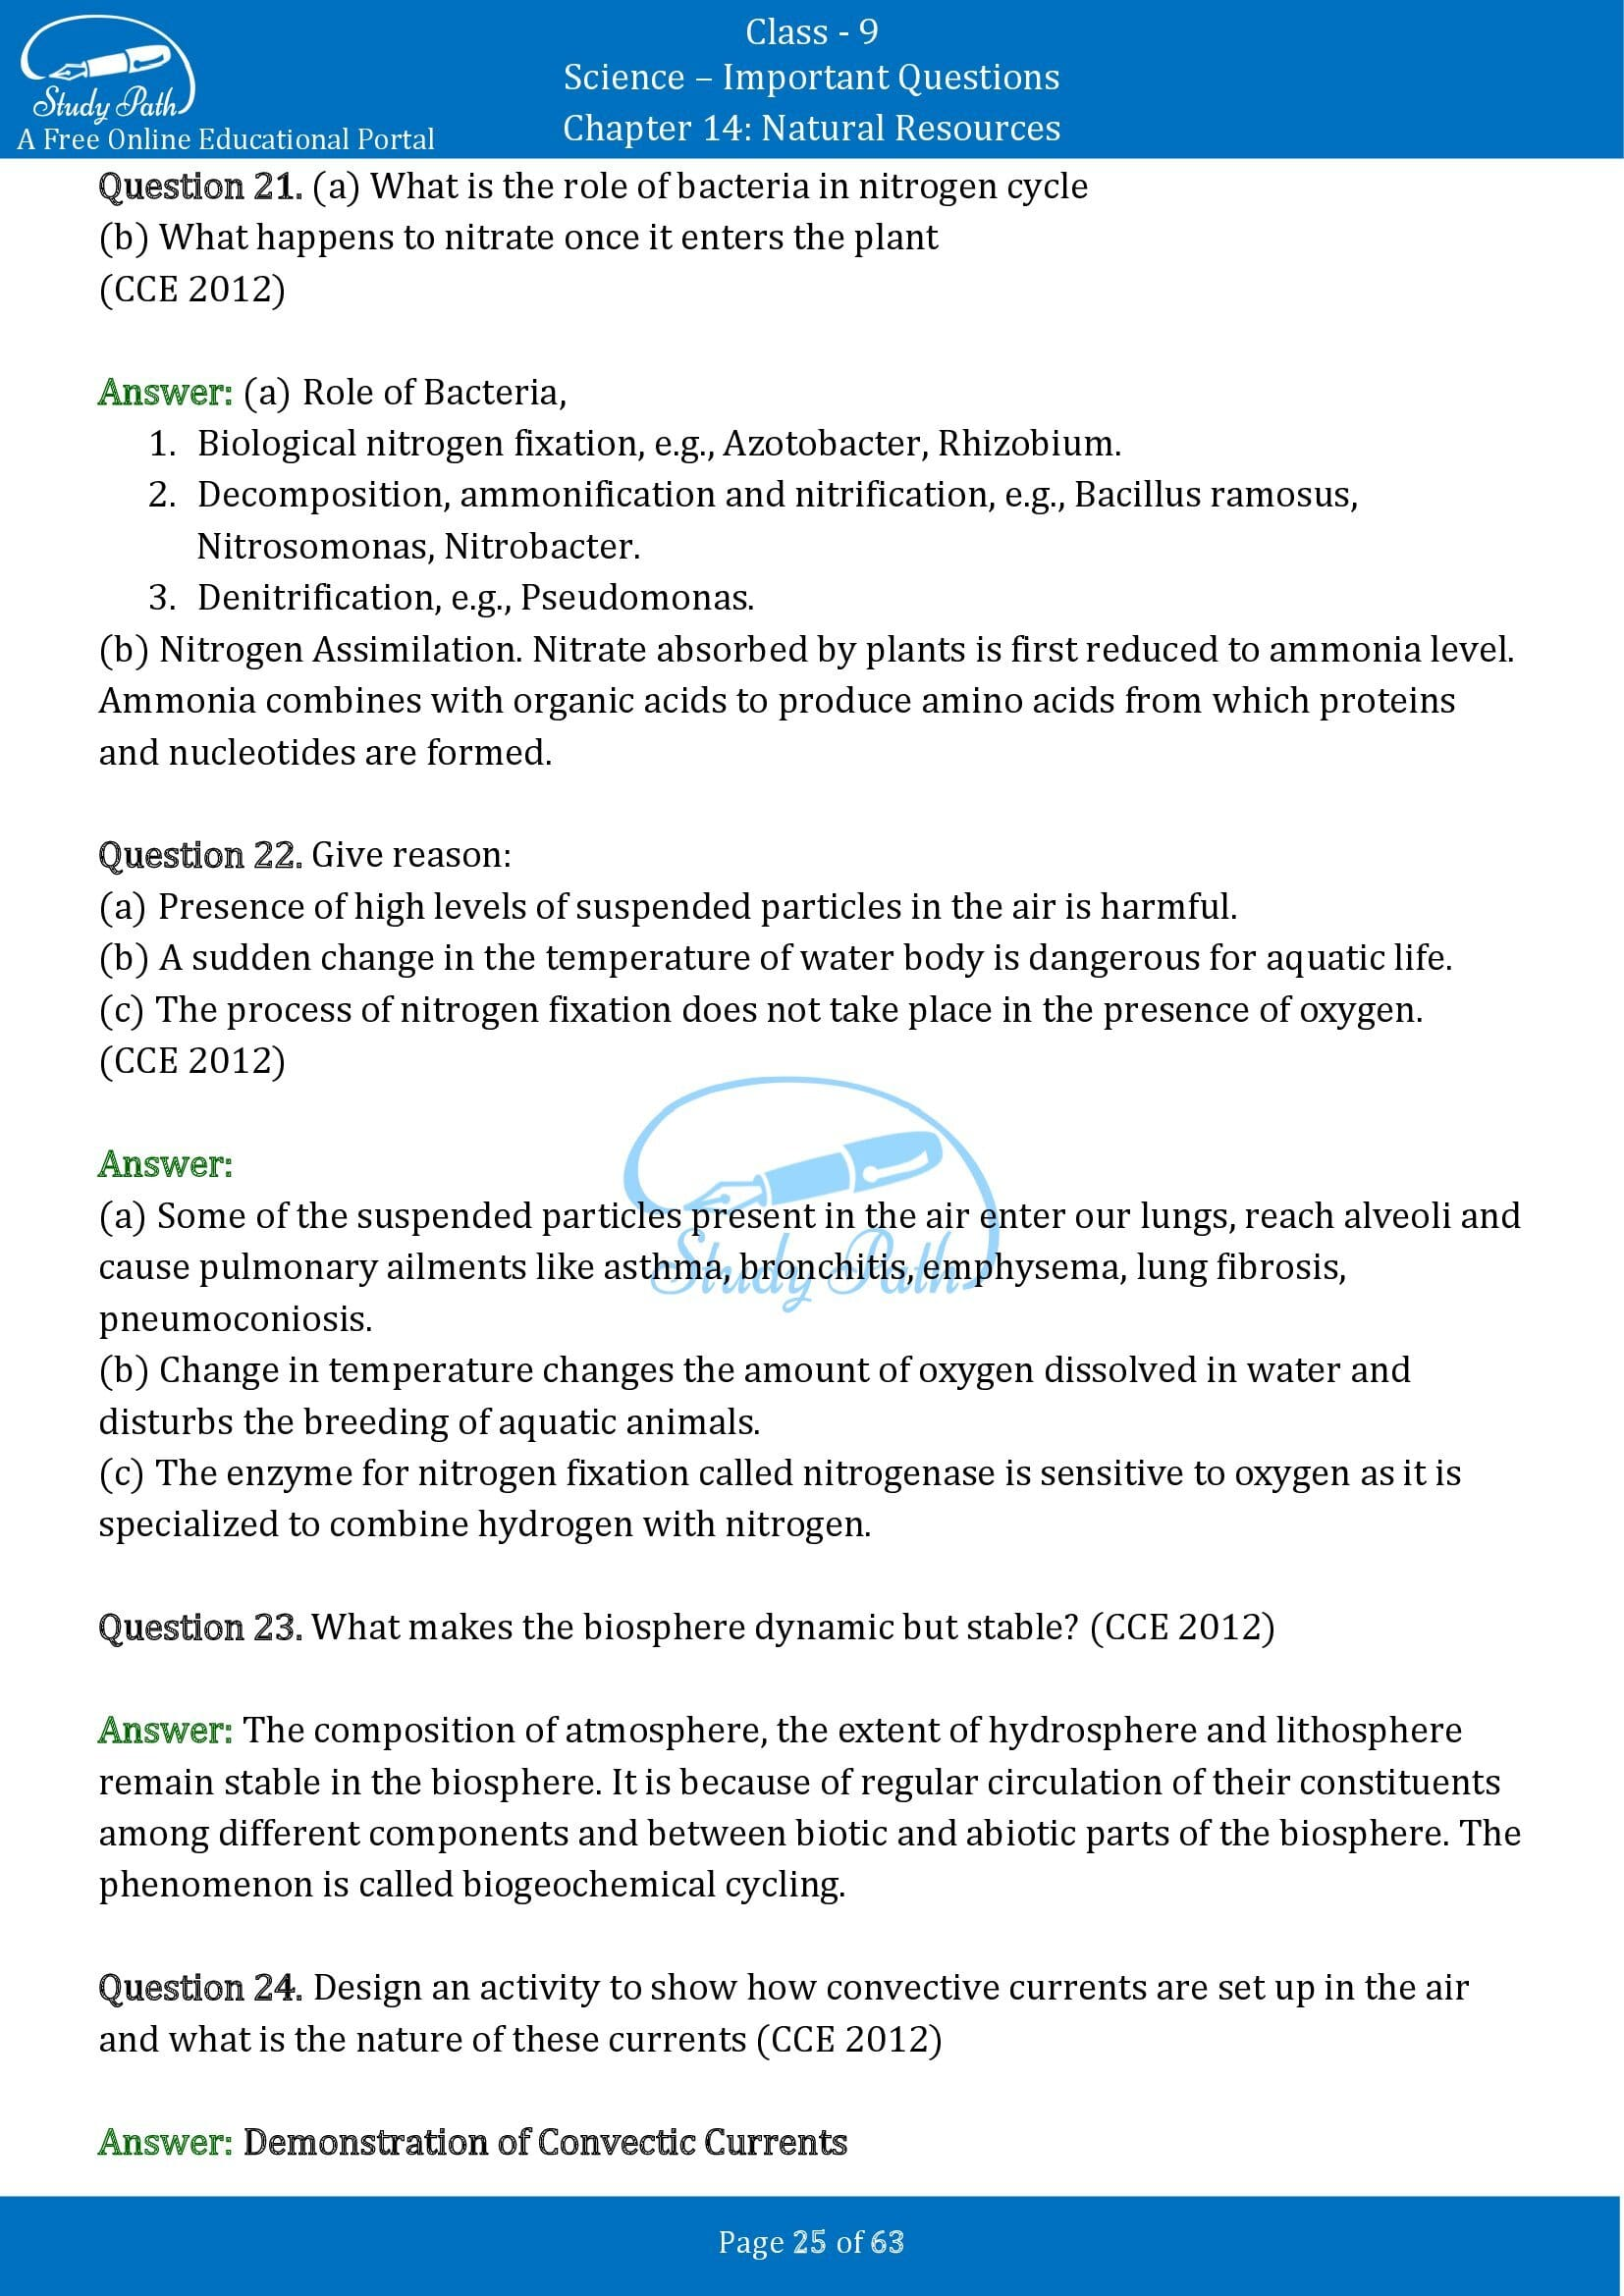 Important Questions for Class 9 Science Chapter 14 Natural Resources 00025